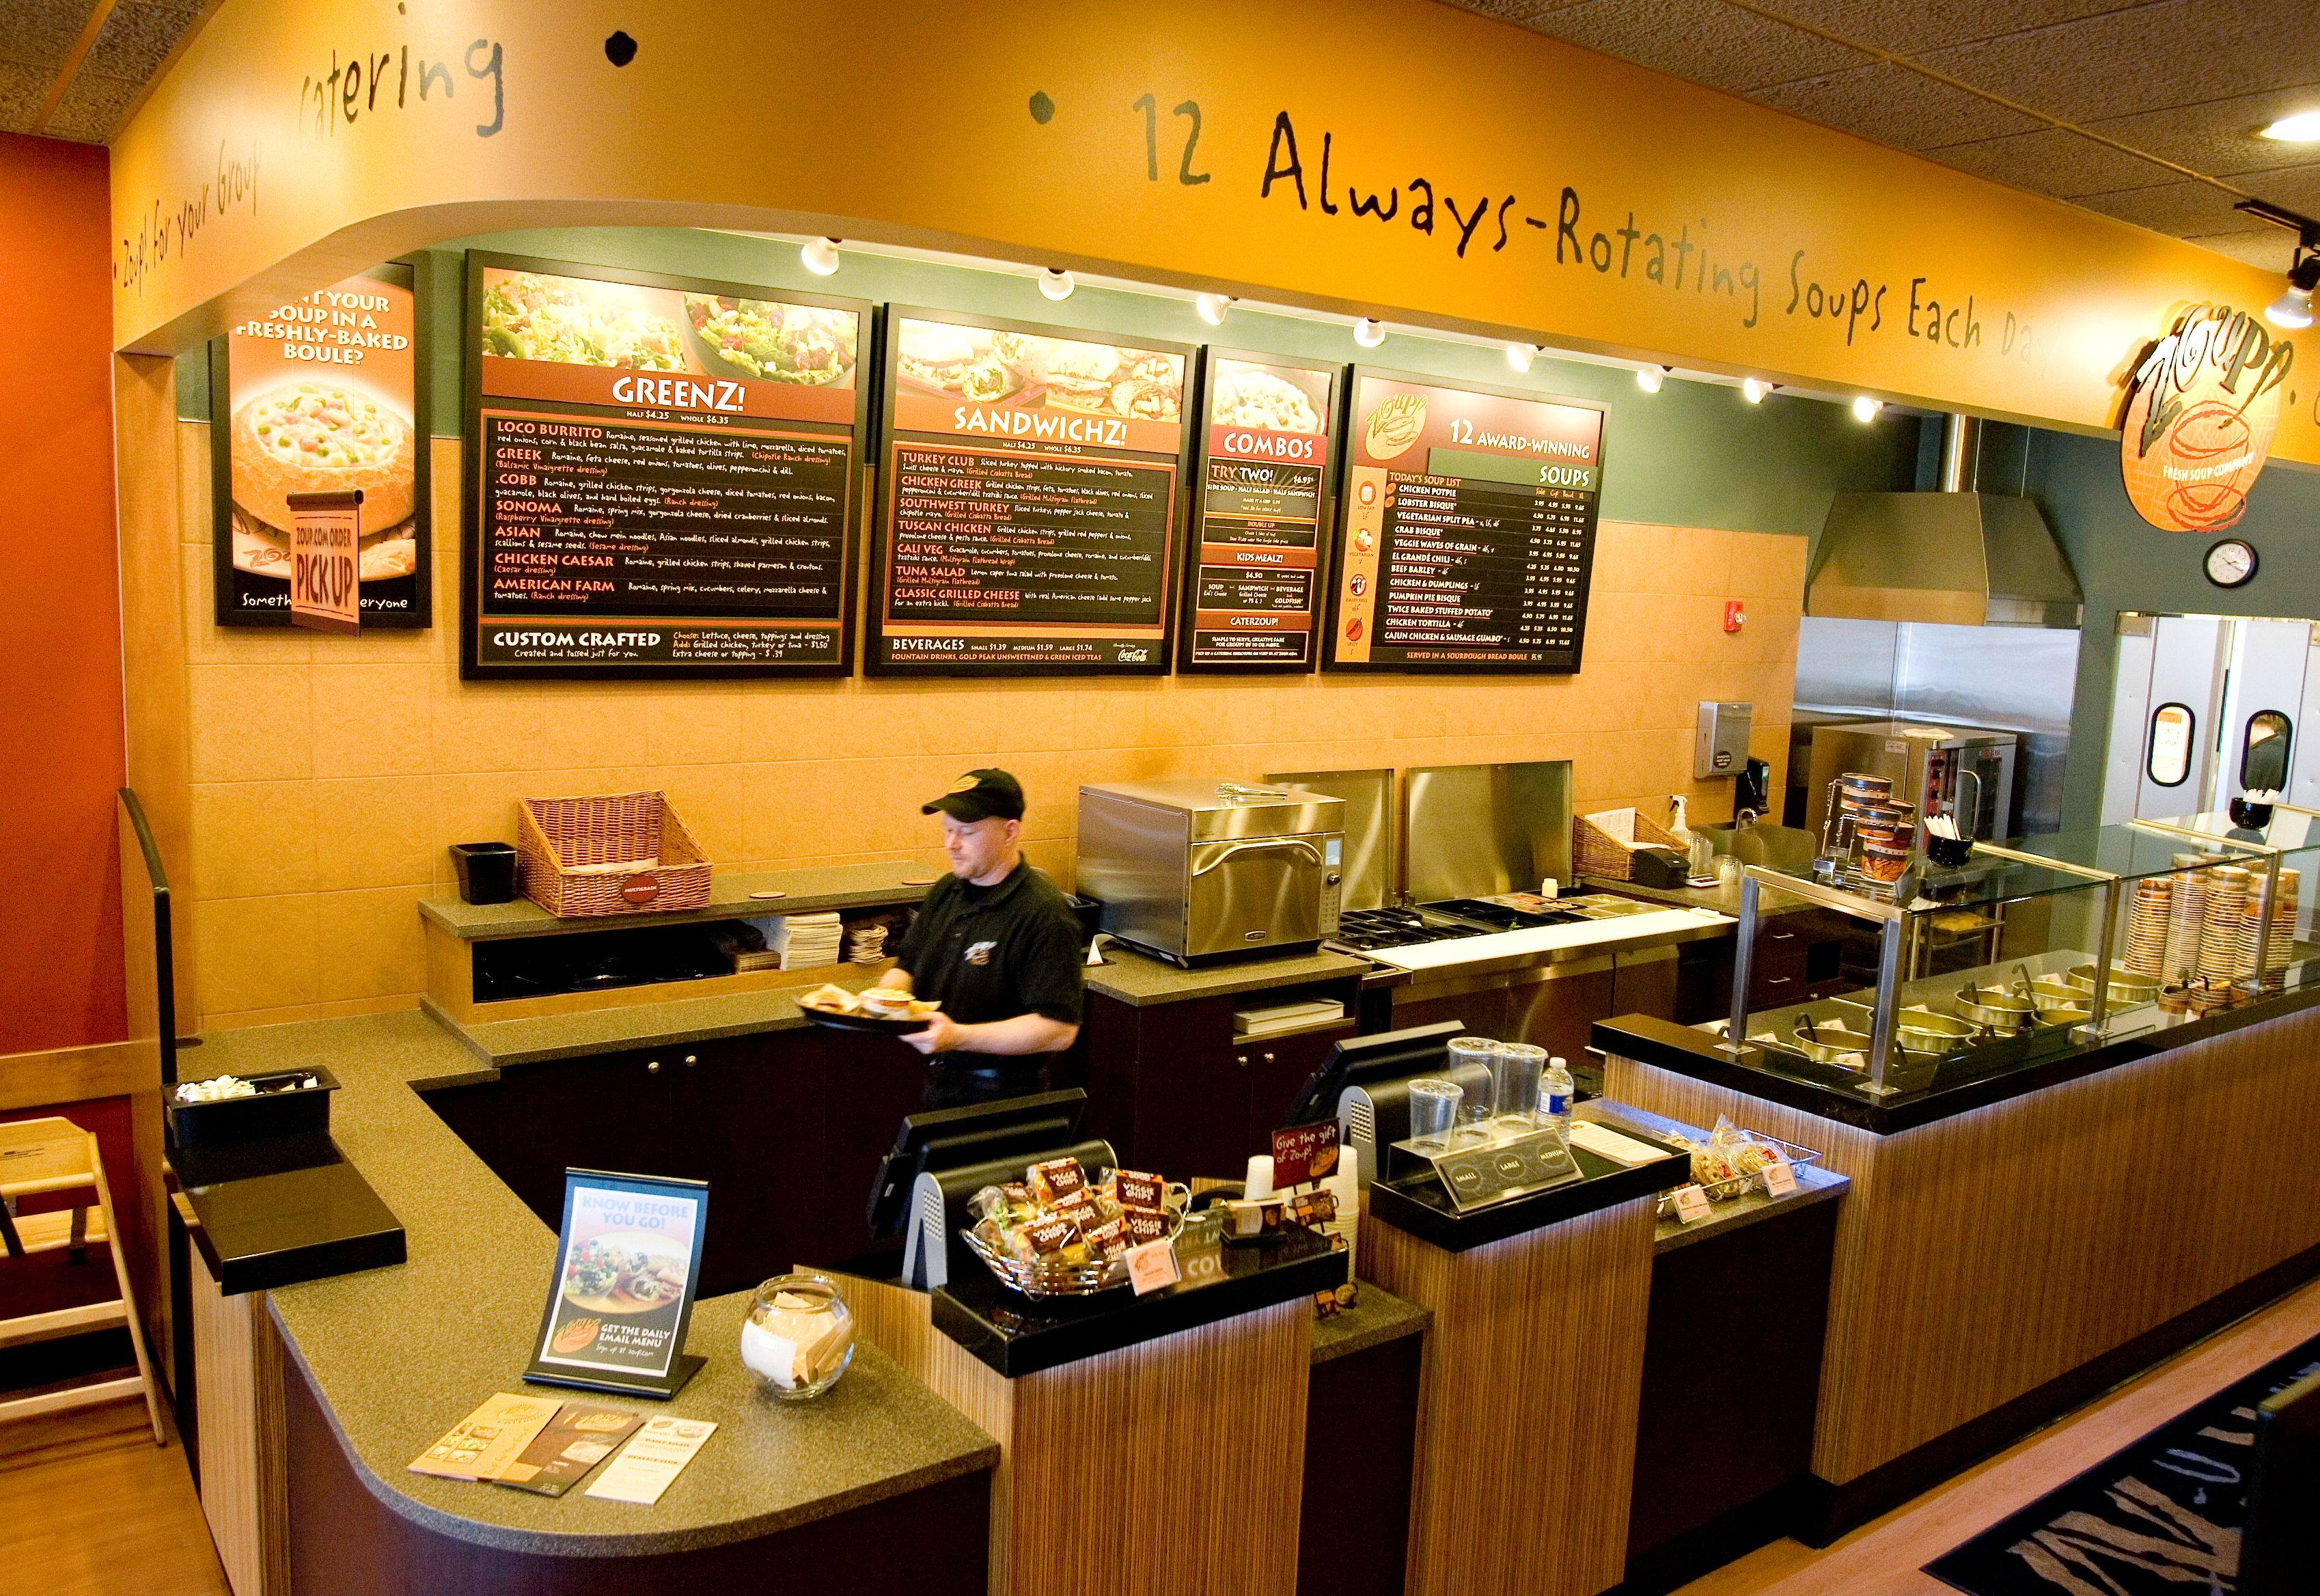 Soup is the focus of a new Zoup franchise that recently opened in Downers Grove.